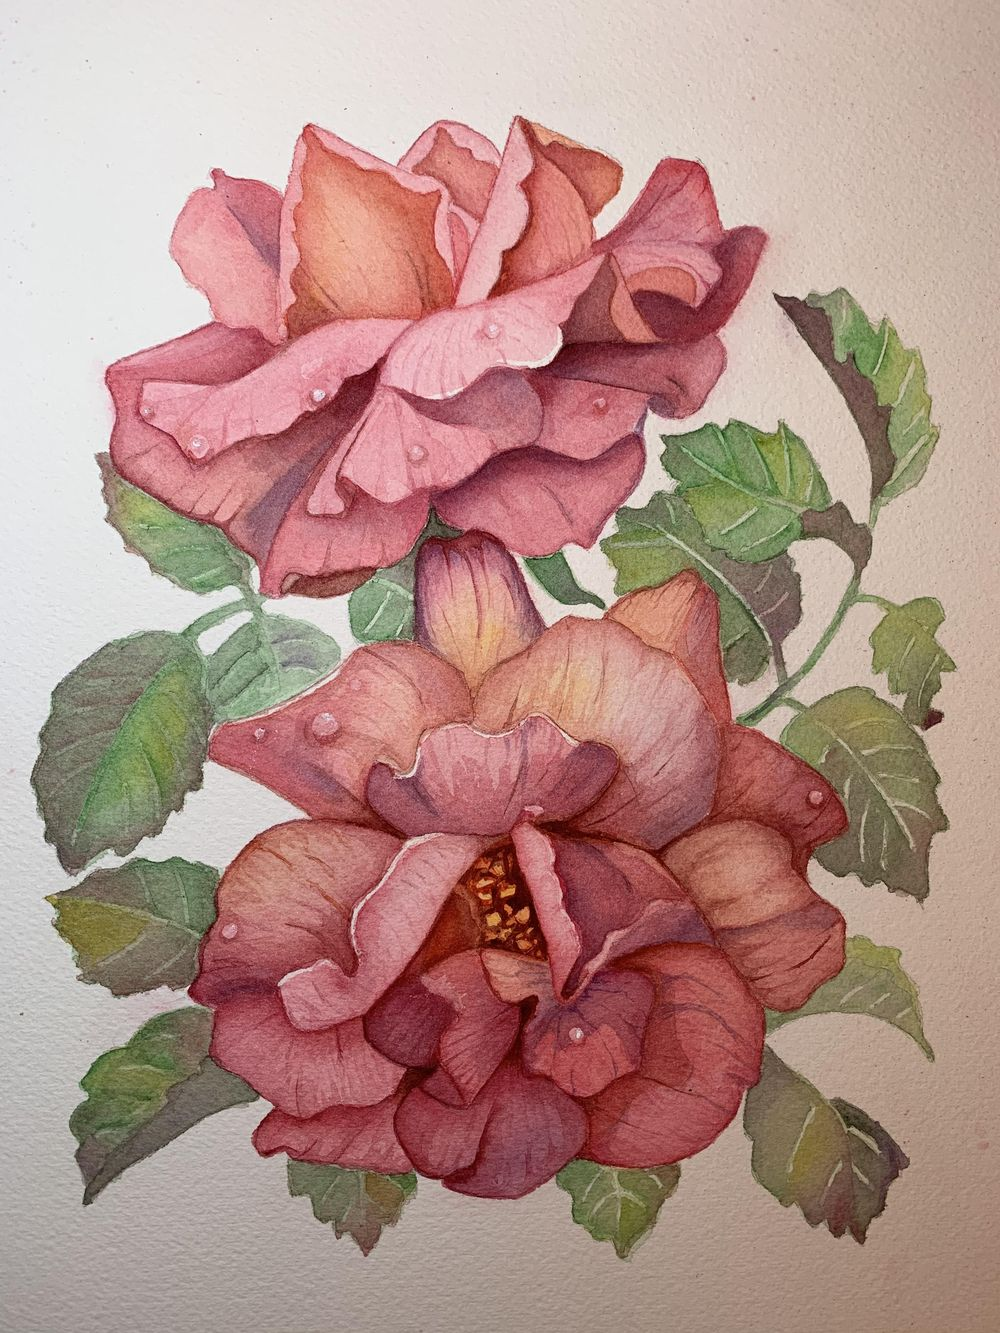 Red Roses - image 1 - student project